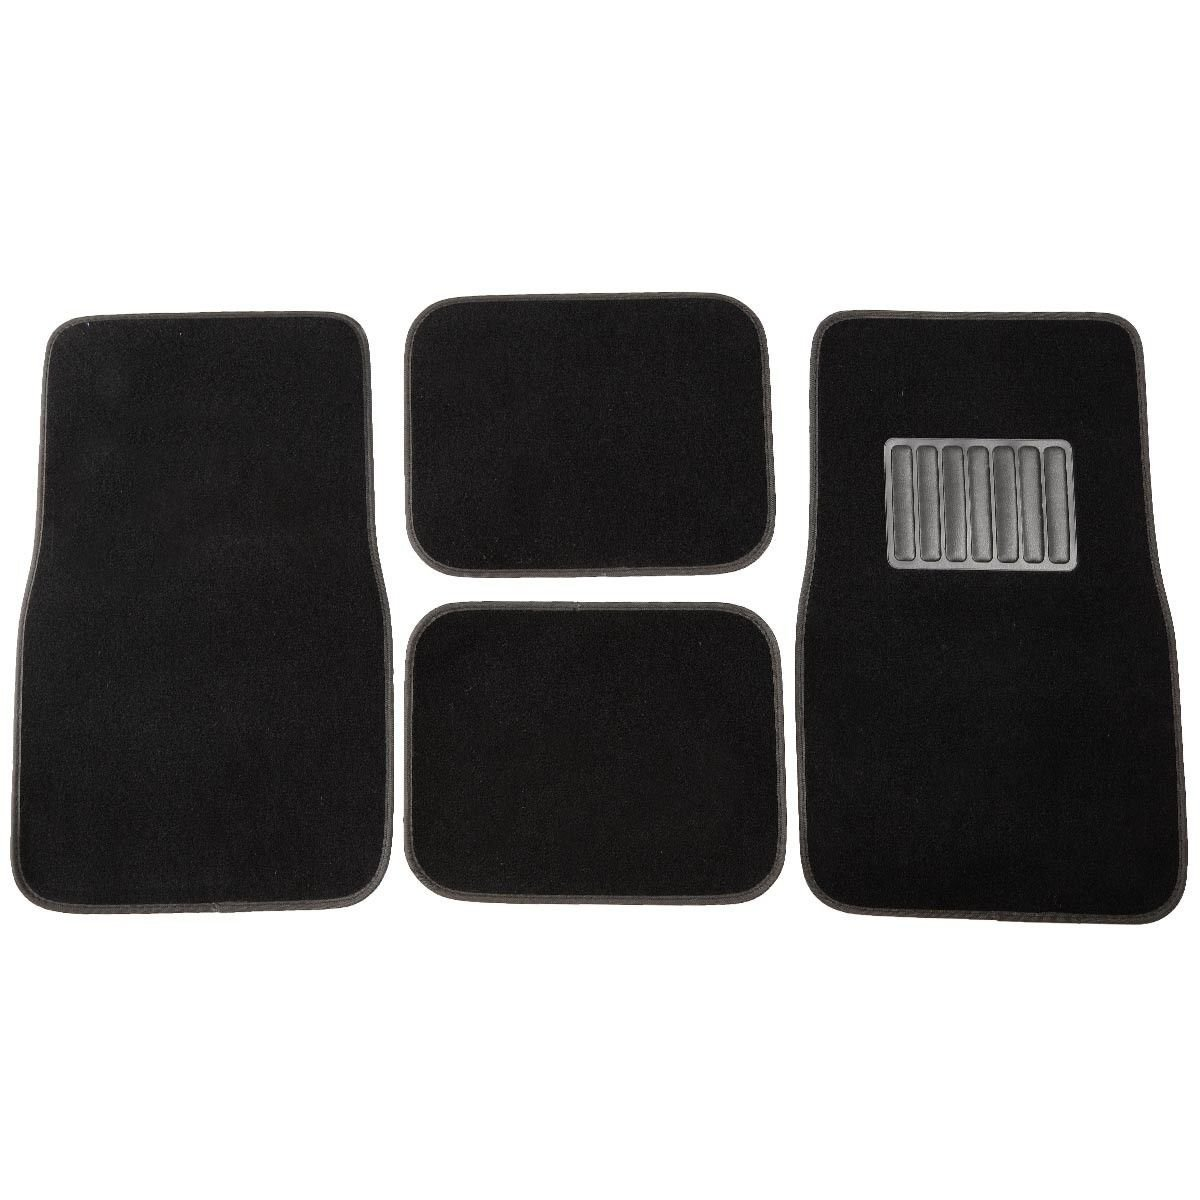 New Universal 4 PC Solid Car Floor Carpet Mat Pad Truck SUV VAN Mats Black